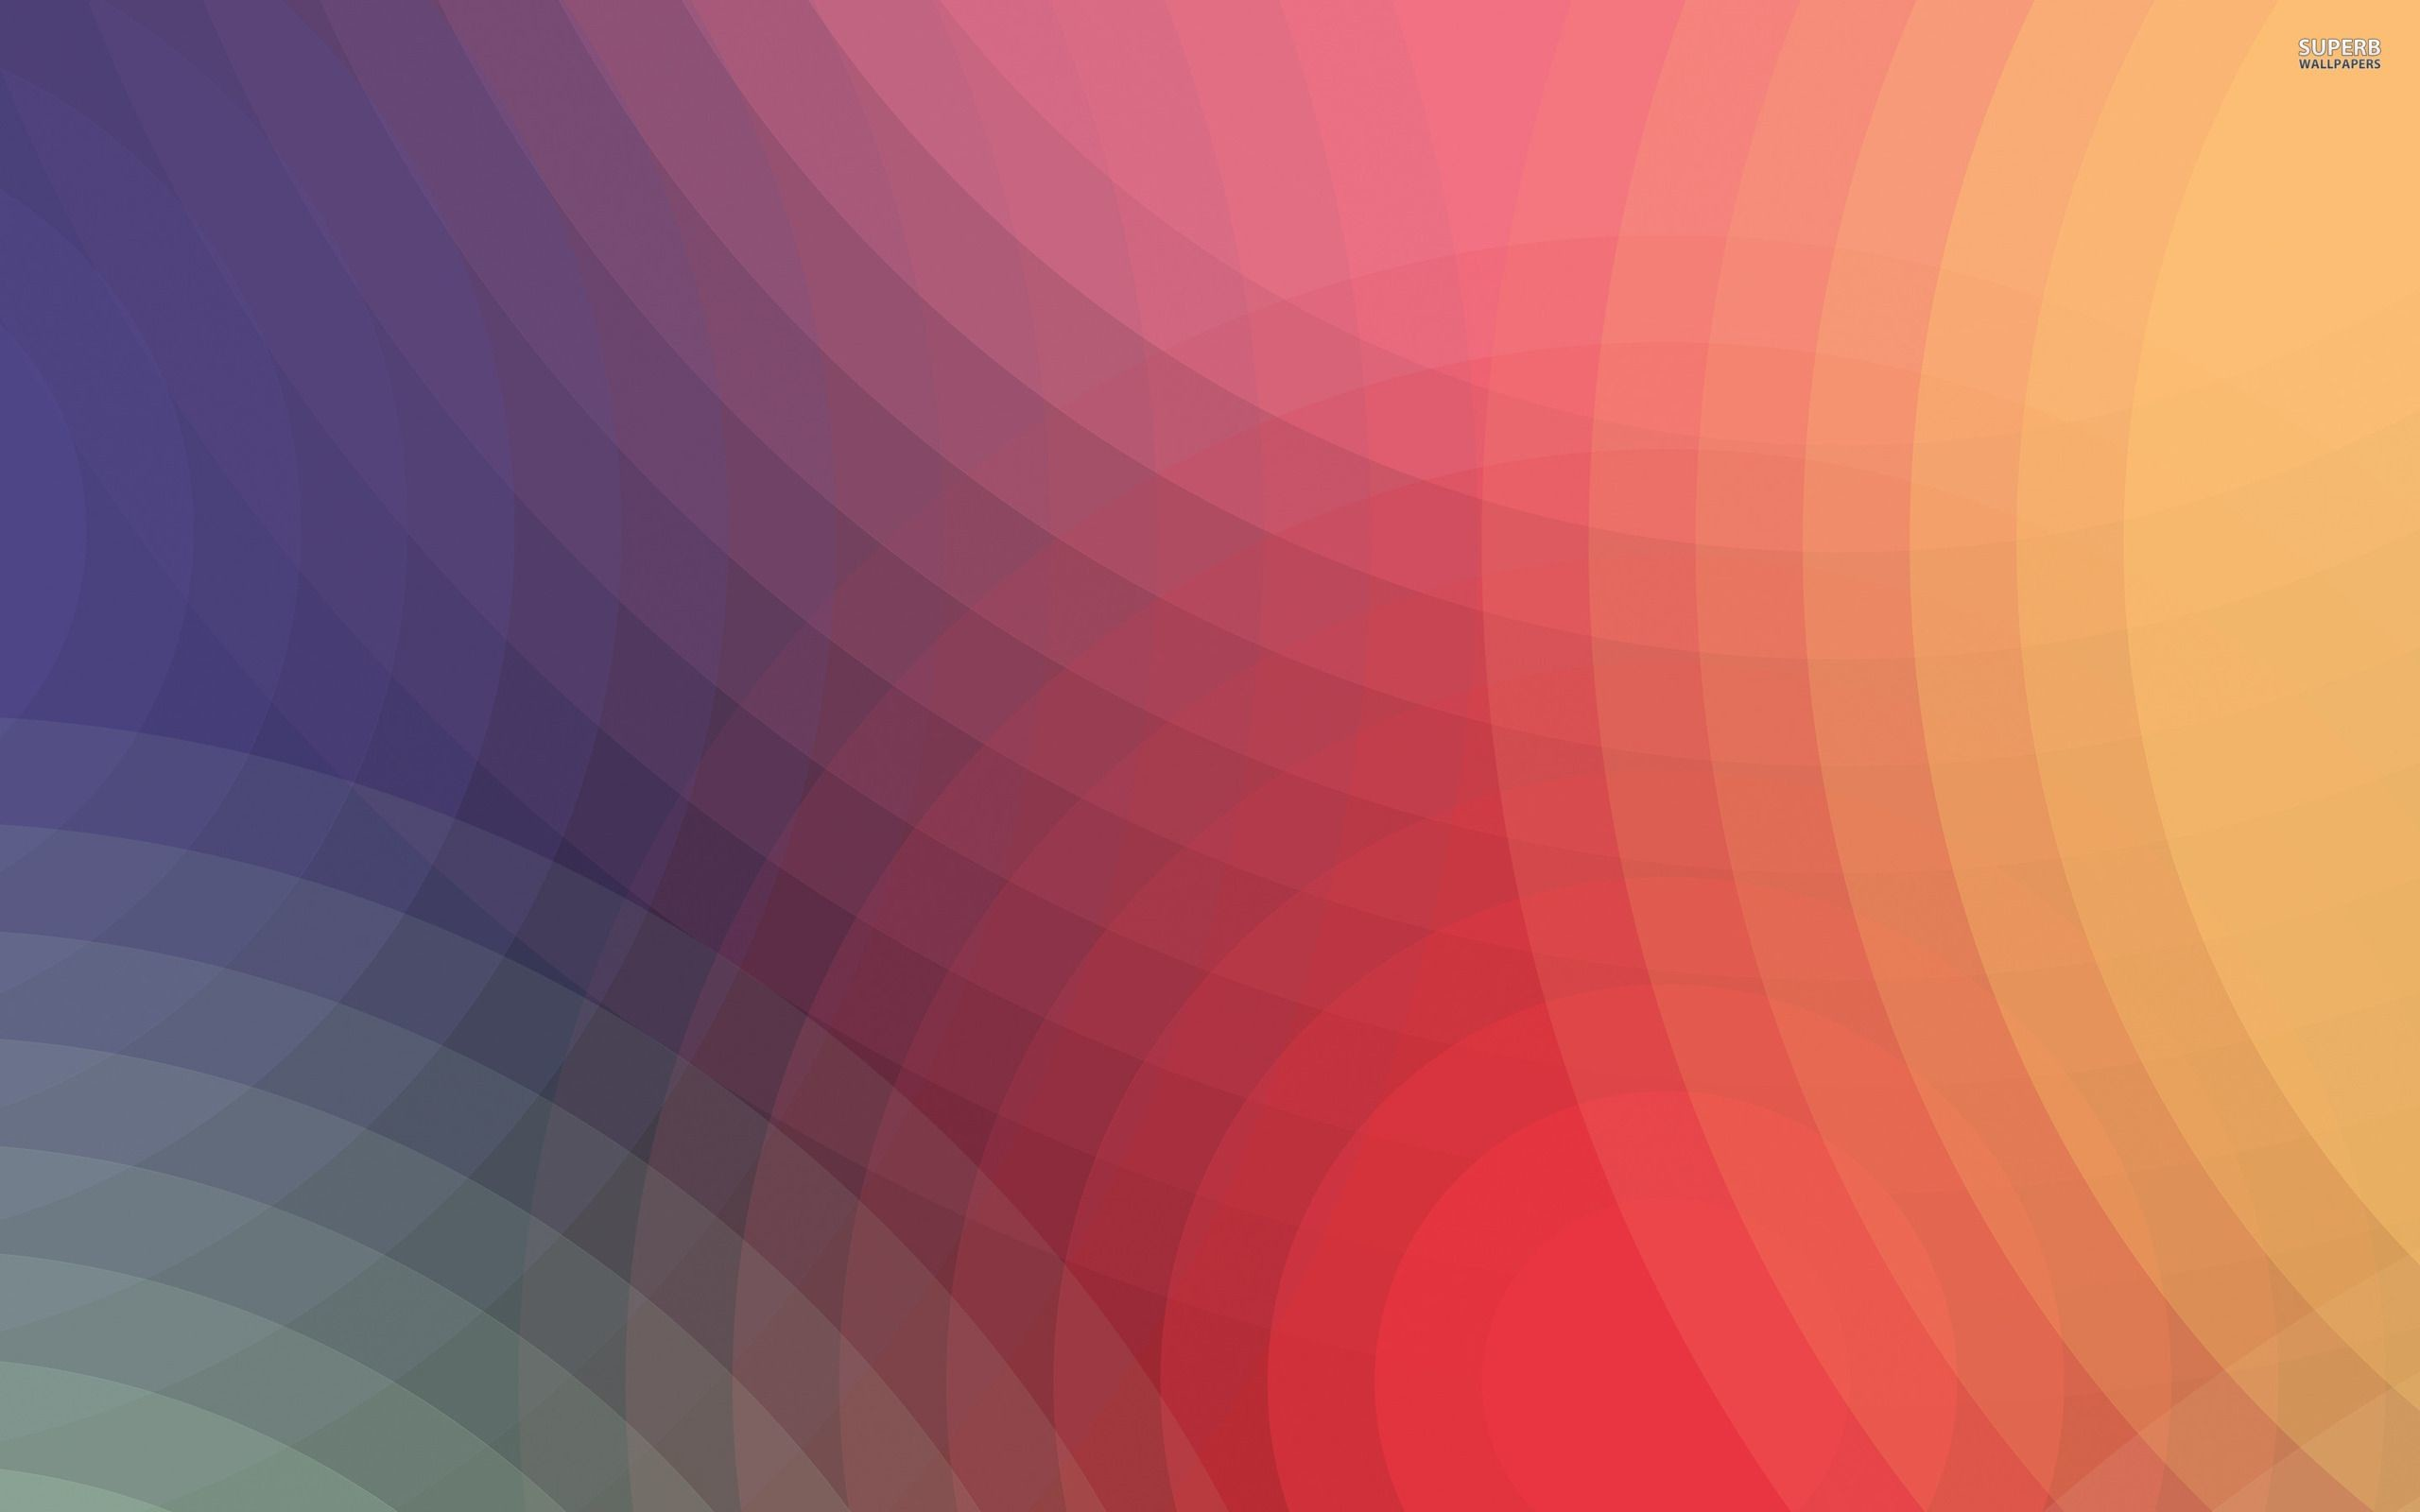 2560x1600 Rainbow colored circles wallpaper - Abstract wallpapers - #17720